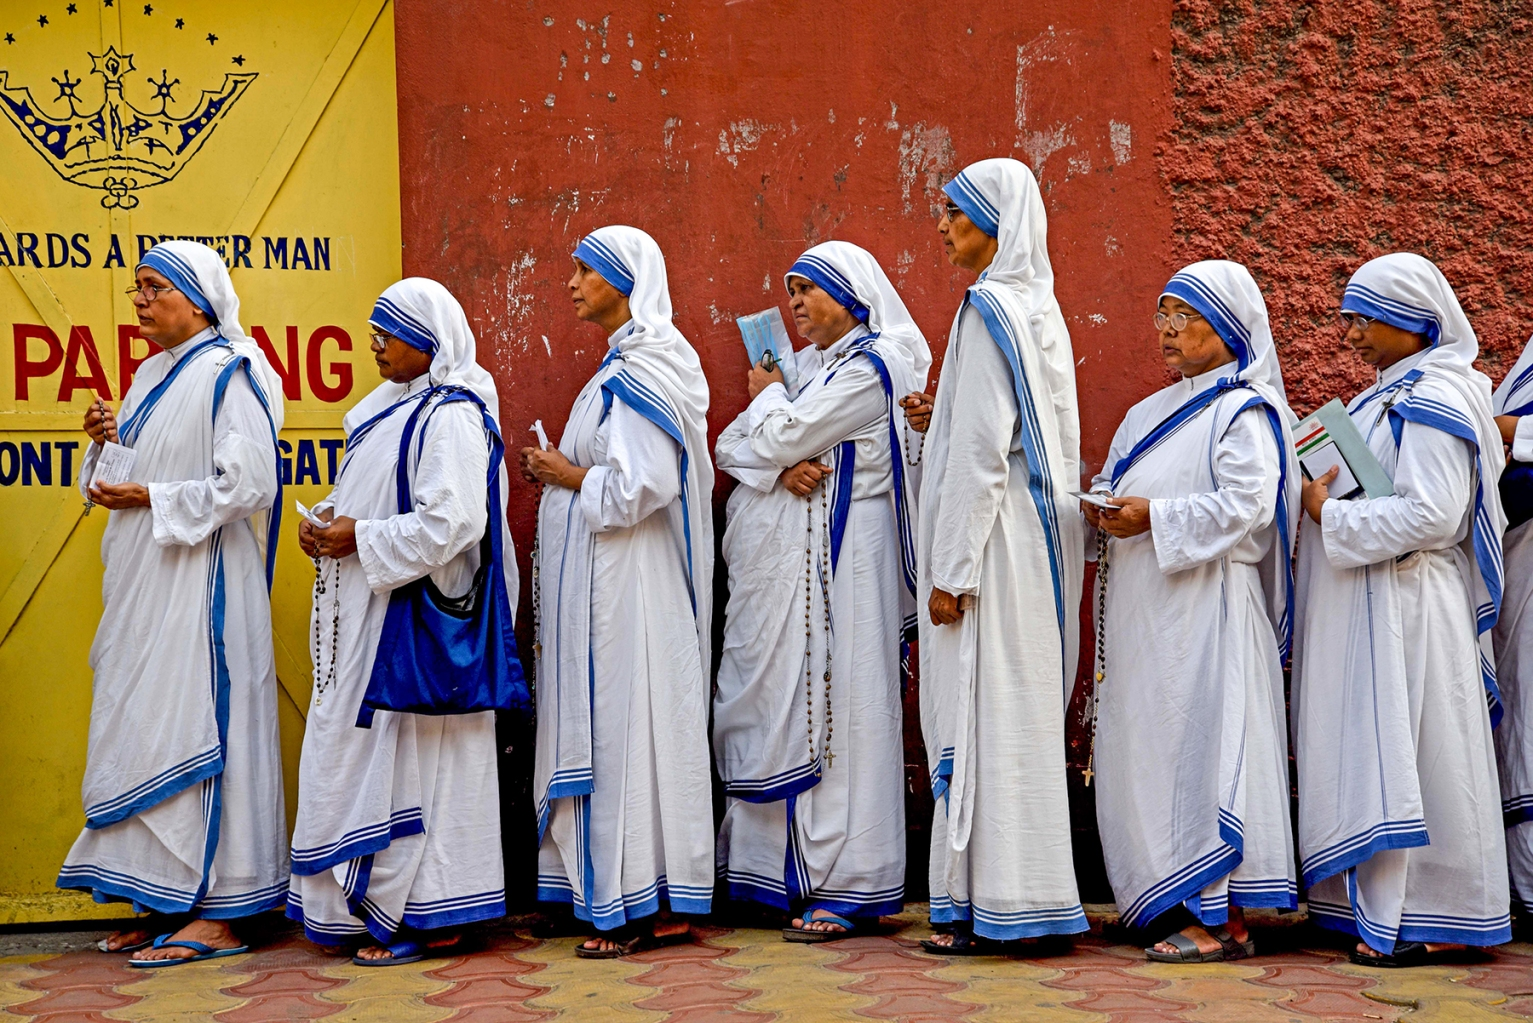 Indian nuns from the Mother Teresa Missionaries of Charities queue to cast their votes at a polling station at St. Mary's School in Kolkata on May 19 during the 7th and final phase of India's general election. AMIT DATTA/AFP/Getty Images